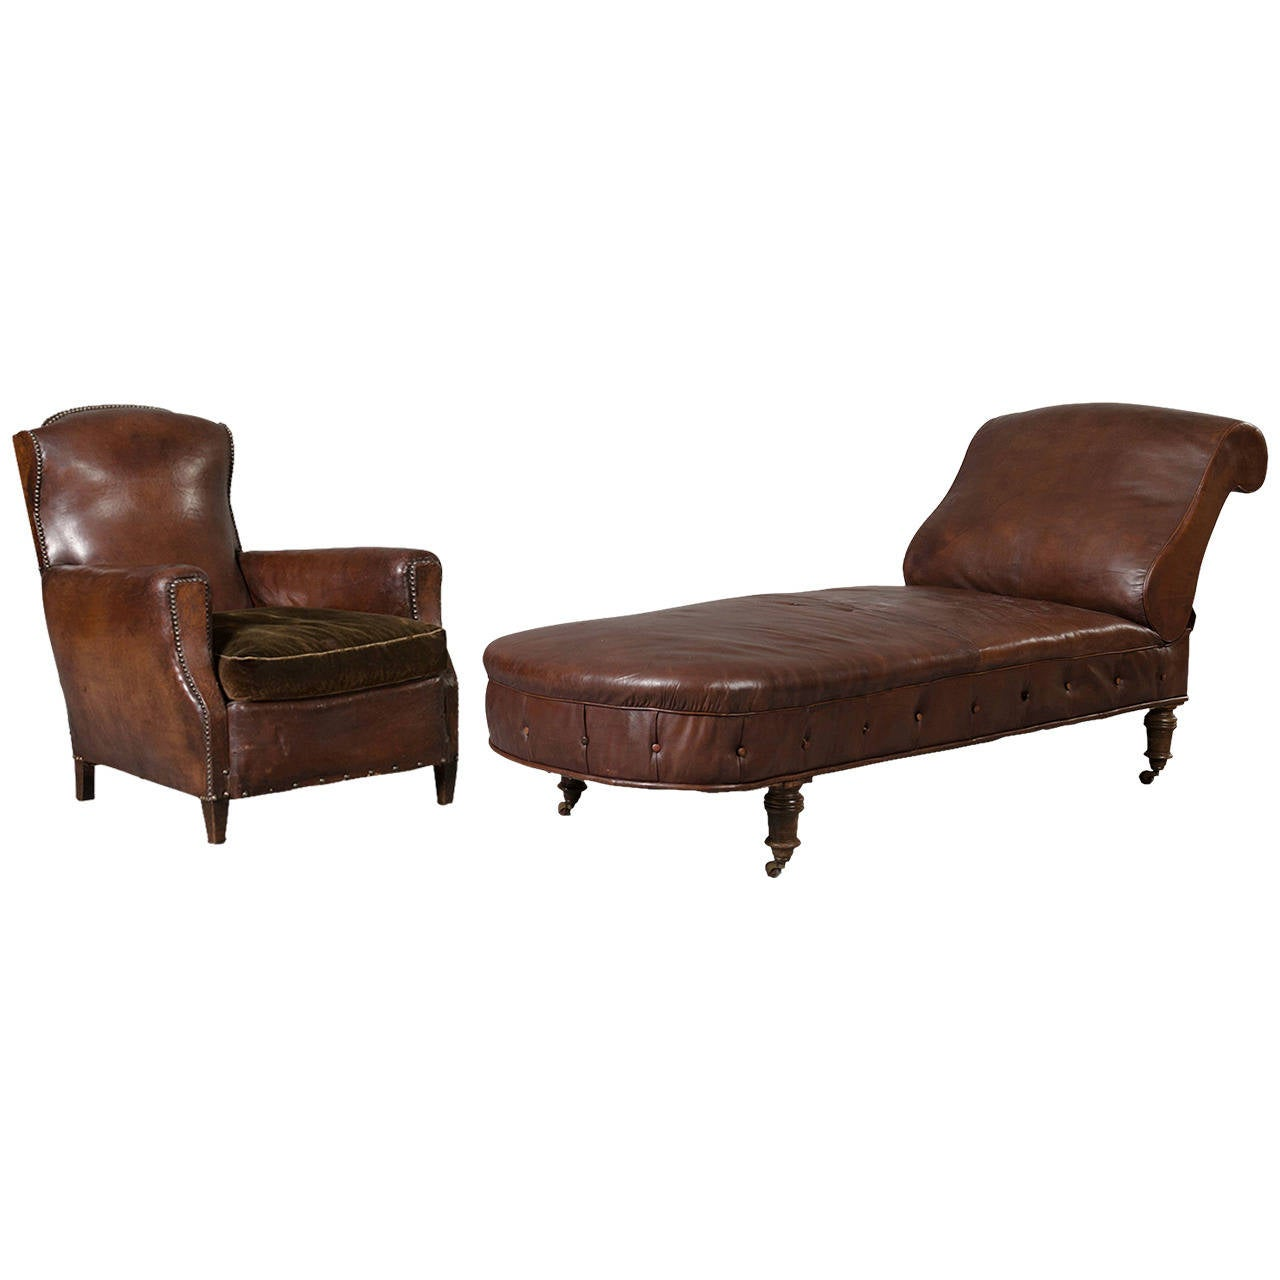 leather armchair and sofa set from 1930s 1